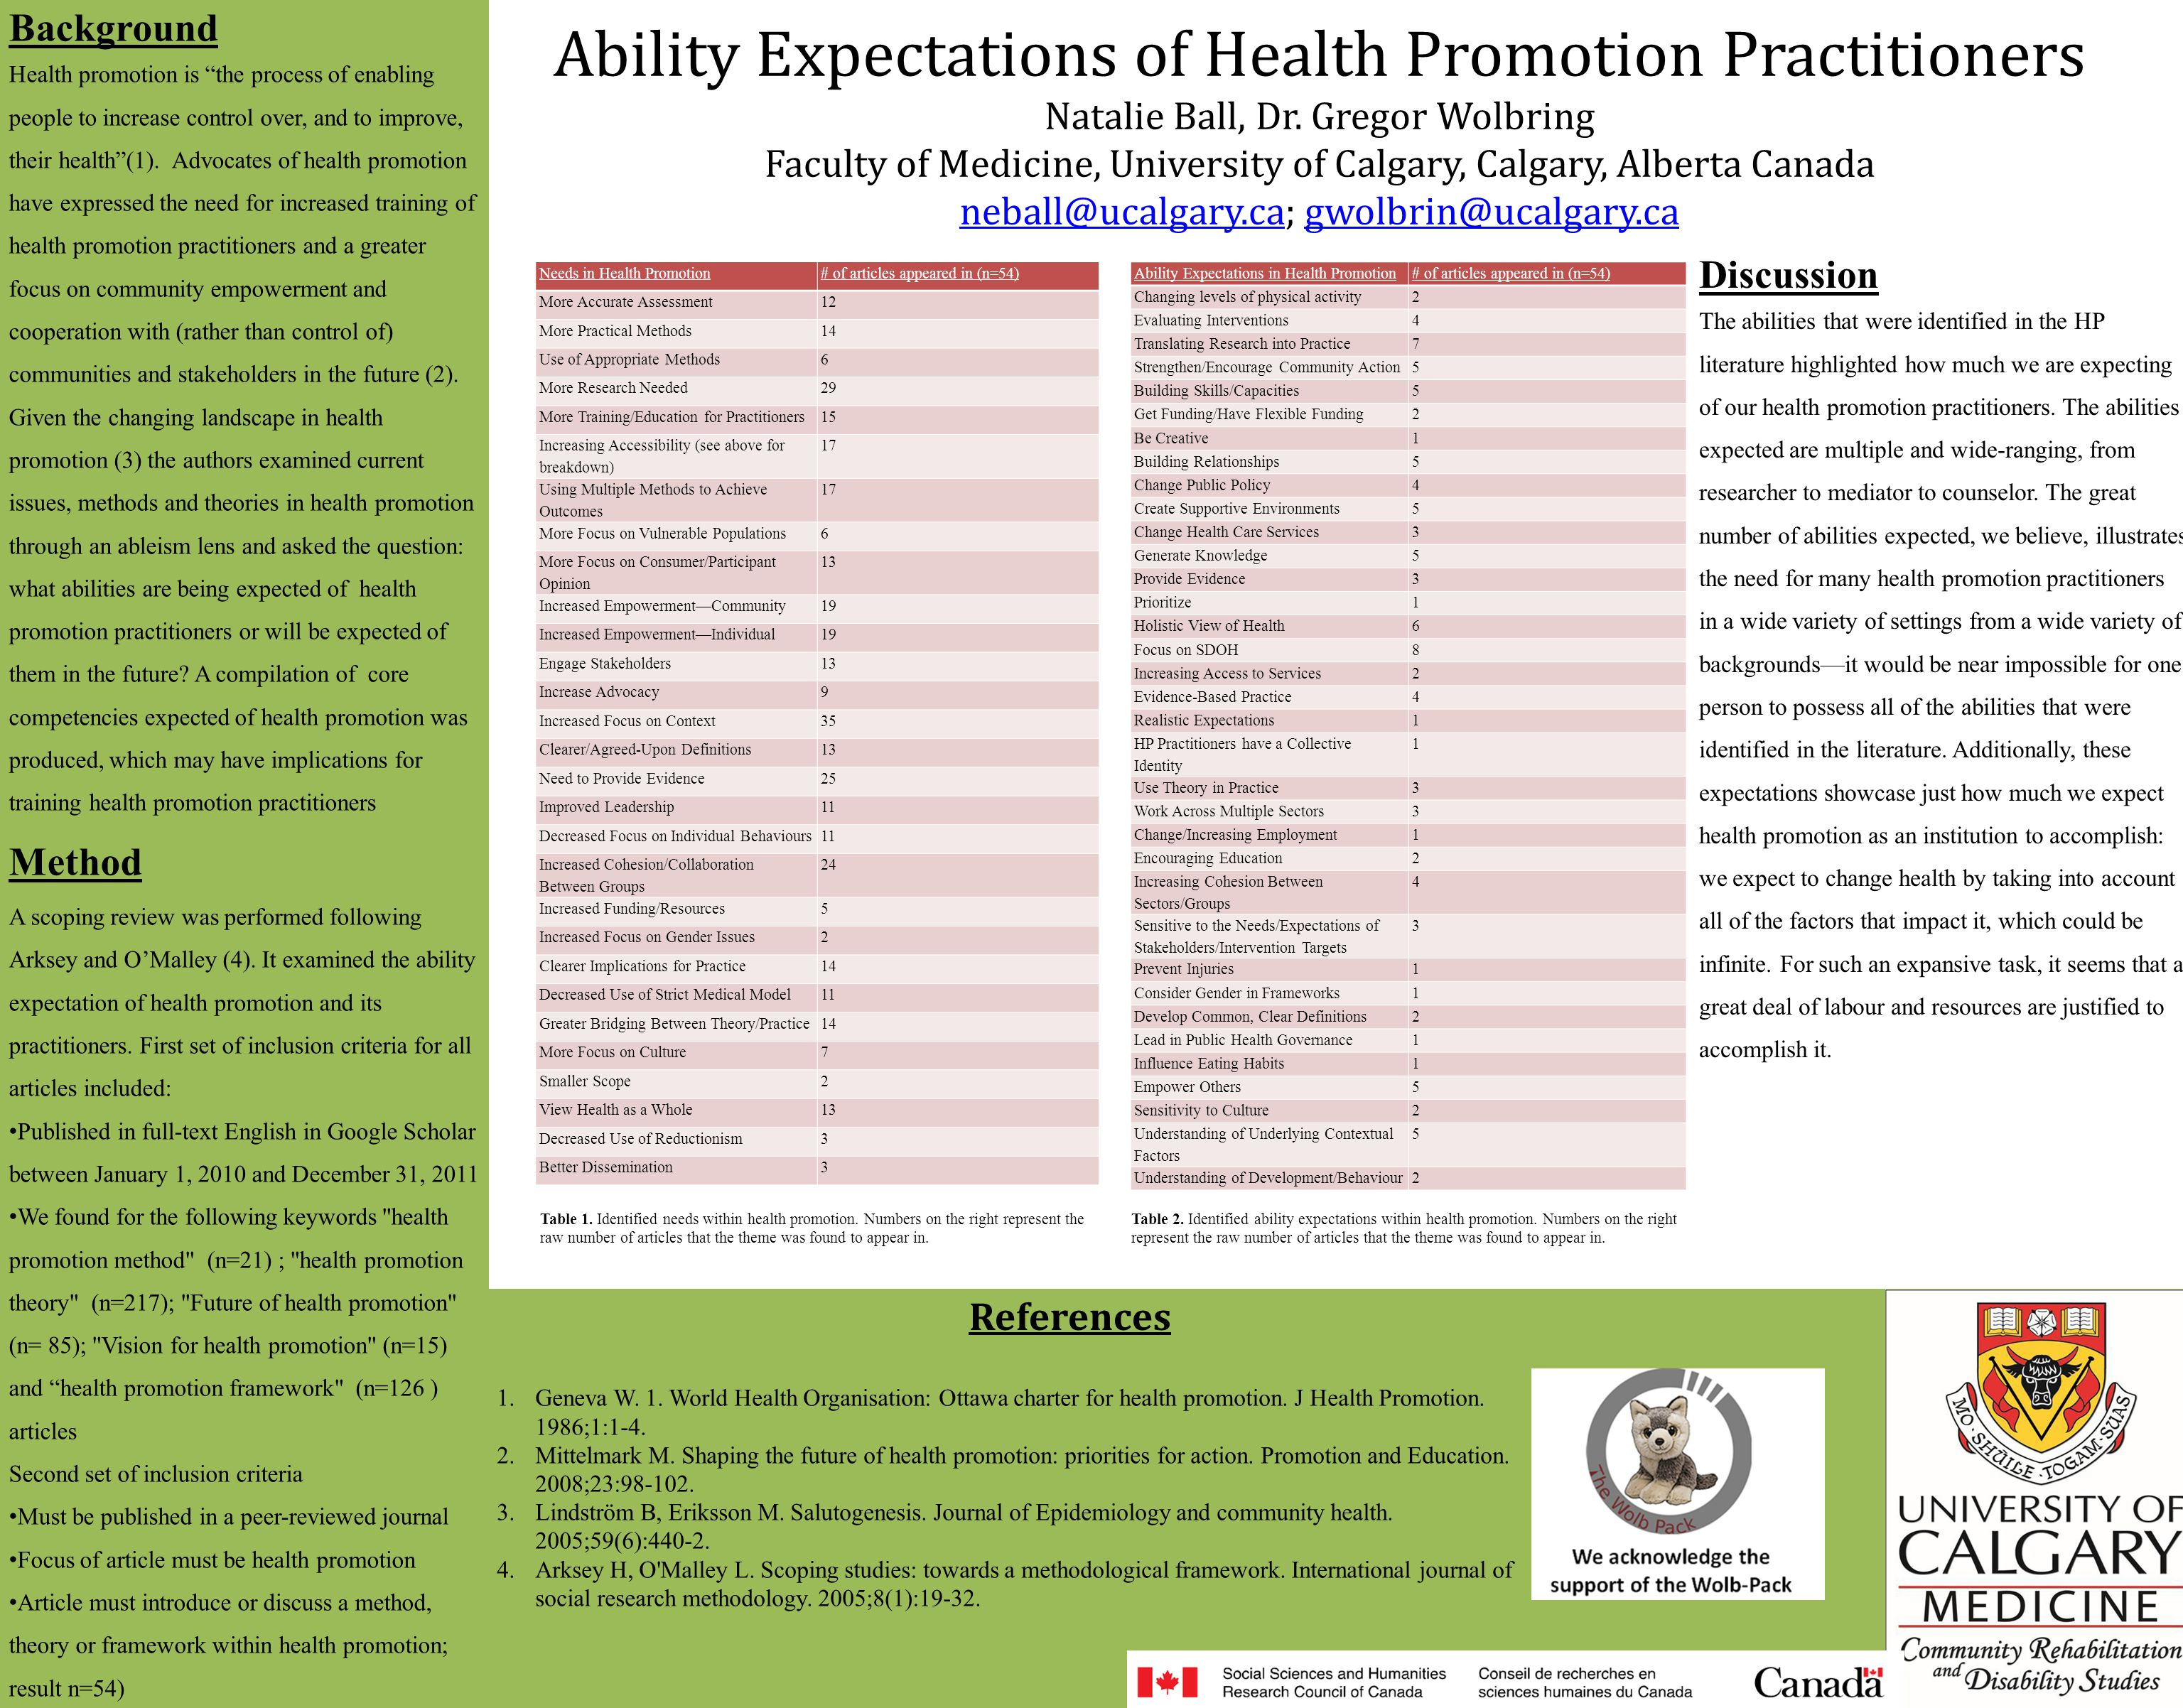 Ability Expectations of Health Promotion Practitioners Natalie Ball, Dr.